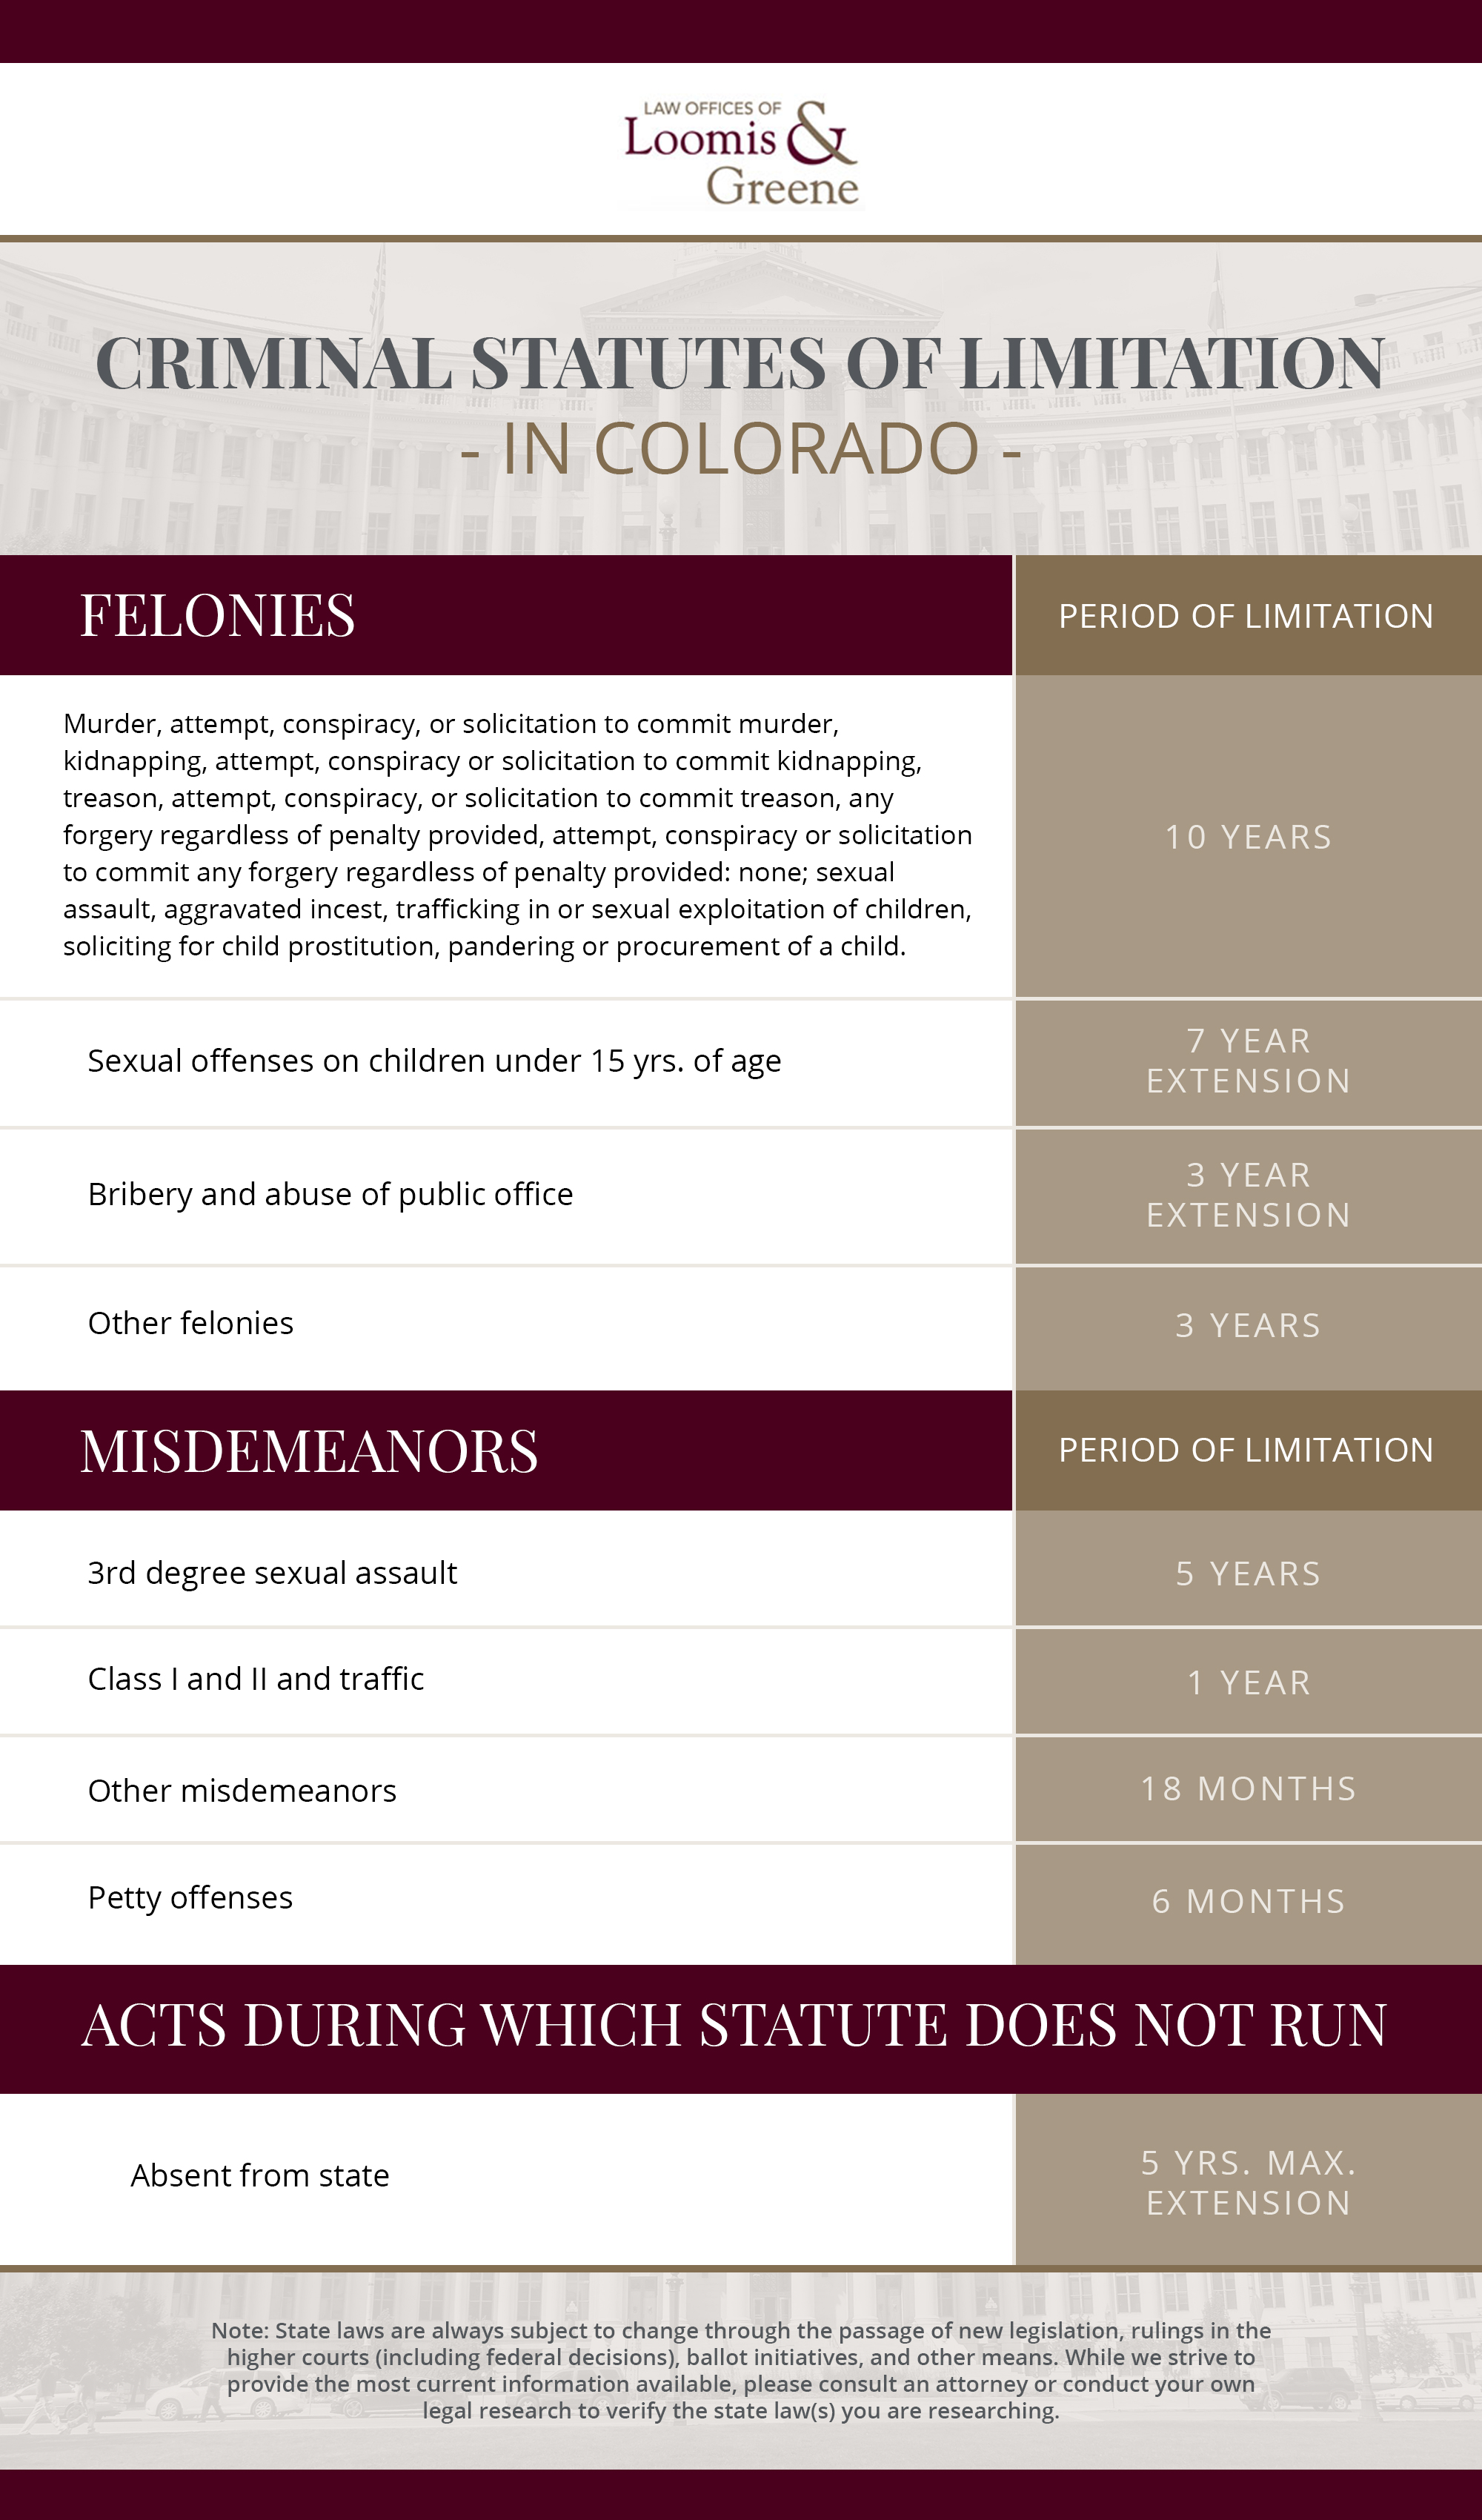 Criminal Statutes of Limitation in Colorado